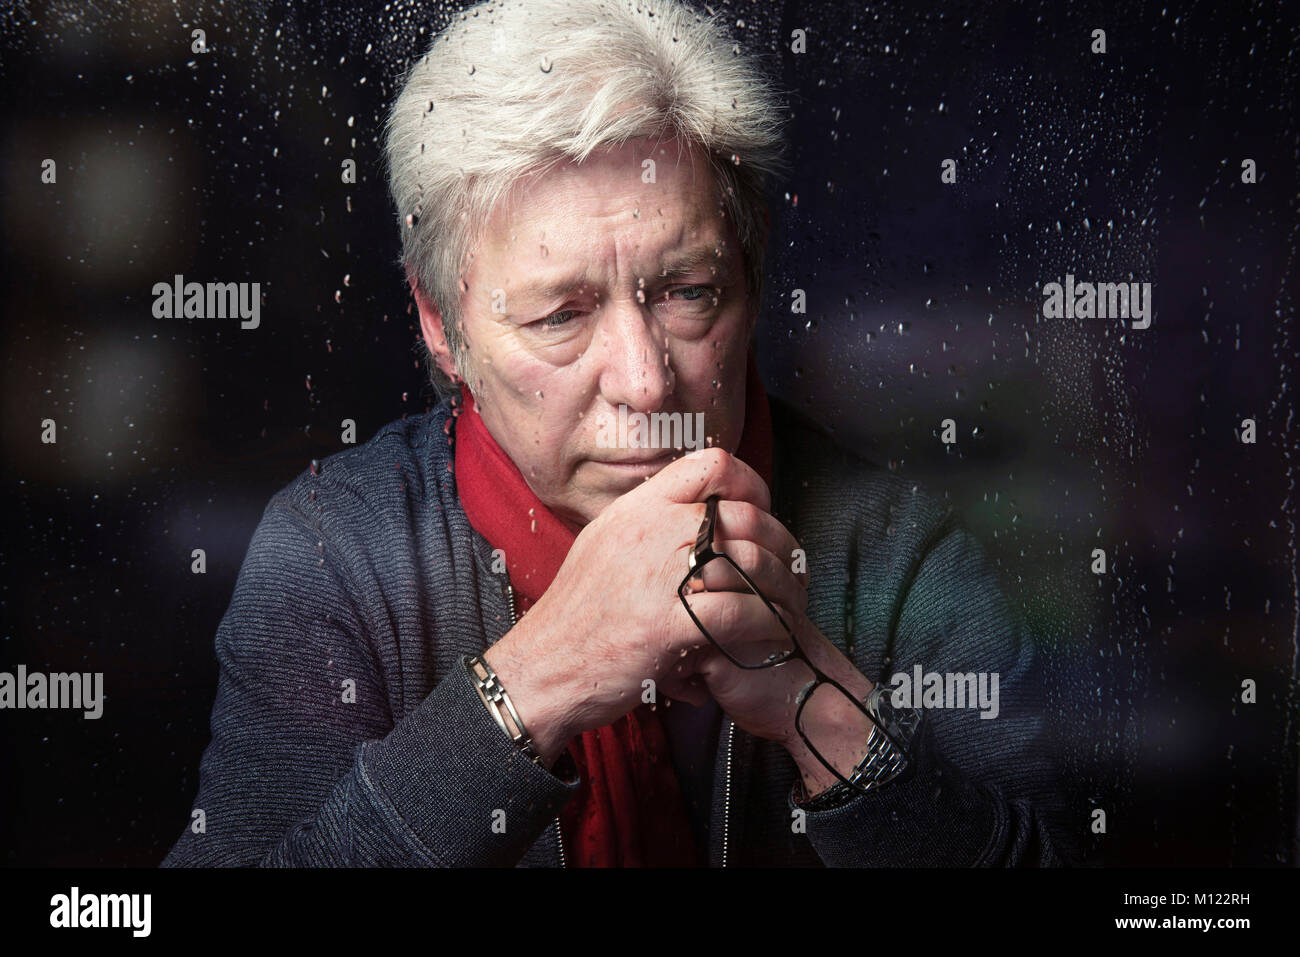 Depressed sad Man looking tearful holding glasses in front of face at window with rain drops close up head shot - Stock Image